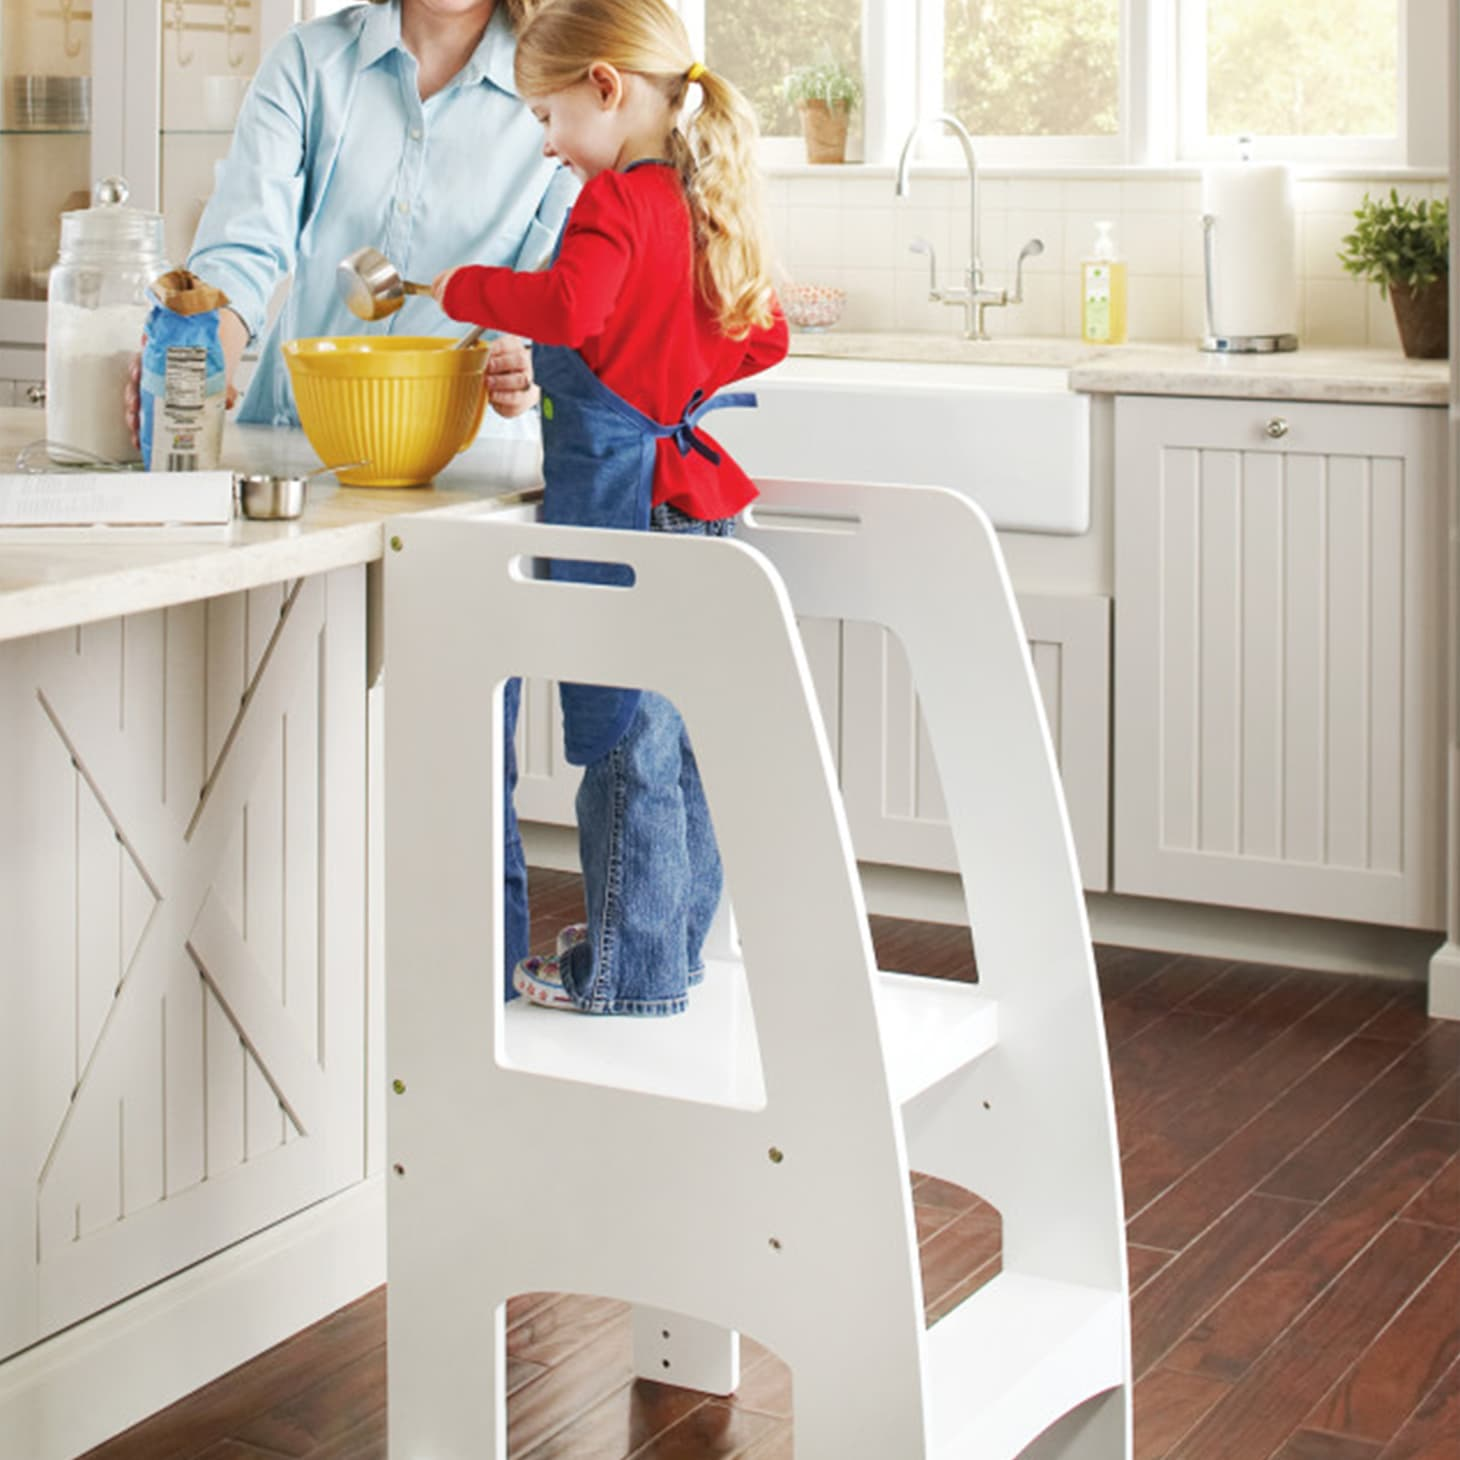 Enjoyable Platforms And Step Stools For Kids In The Kitchen Kitchn Theyellowbook Wood Chair Design Ideas Theyellowbookinfo